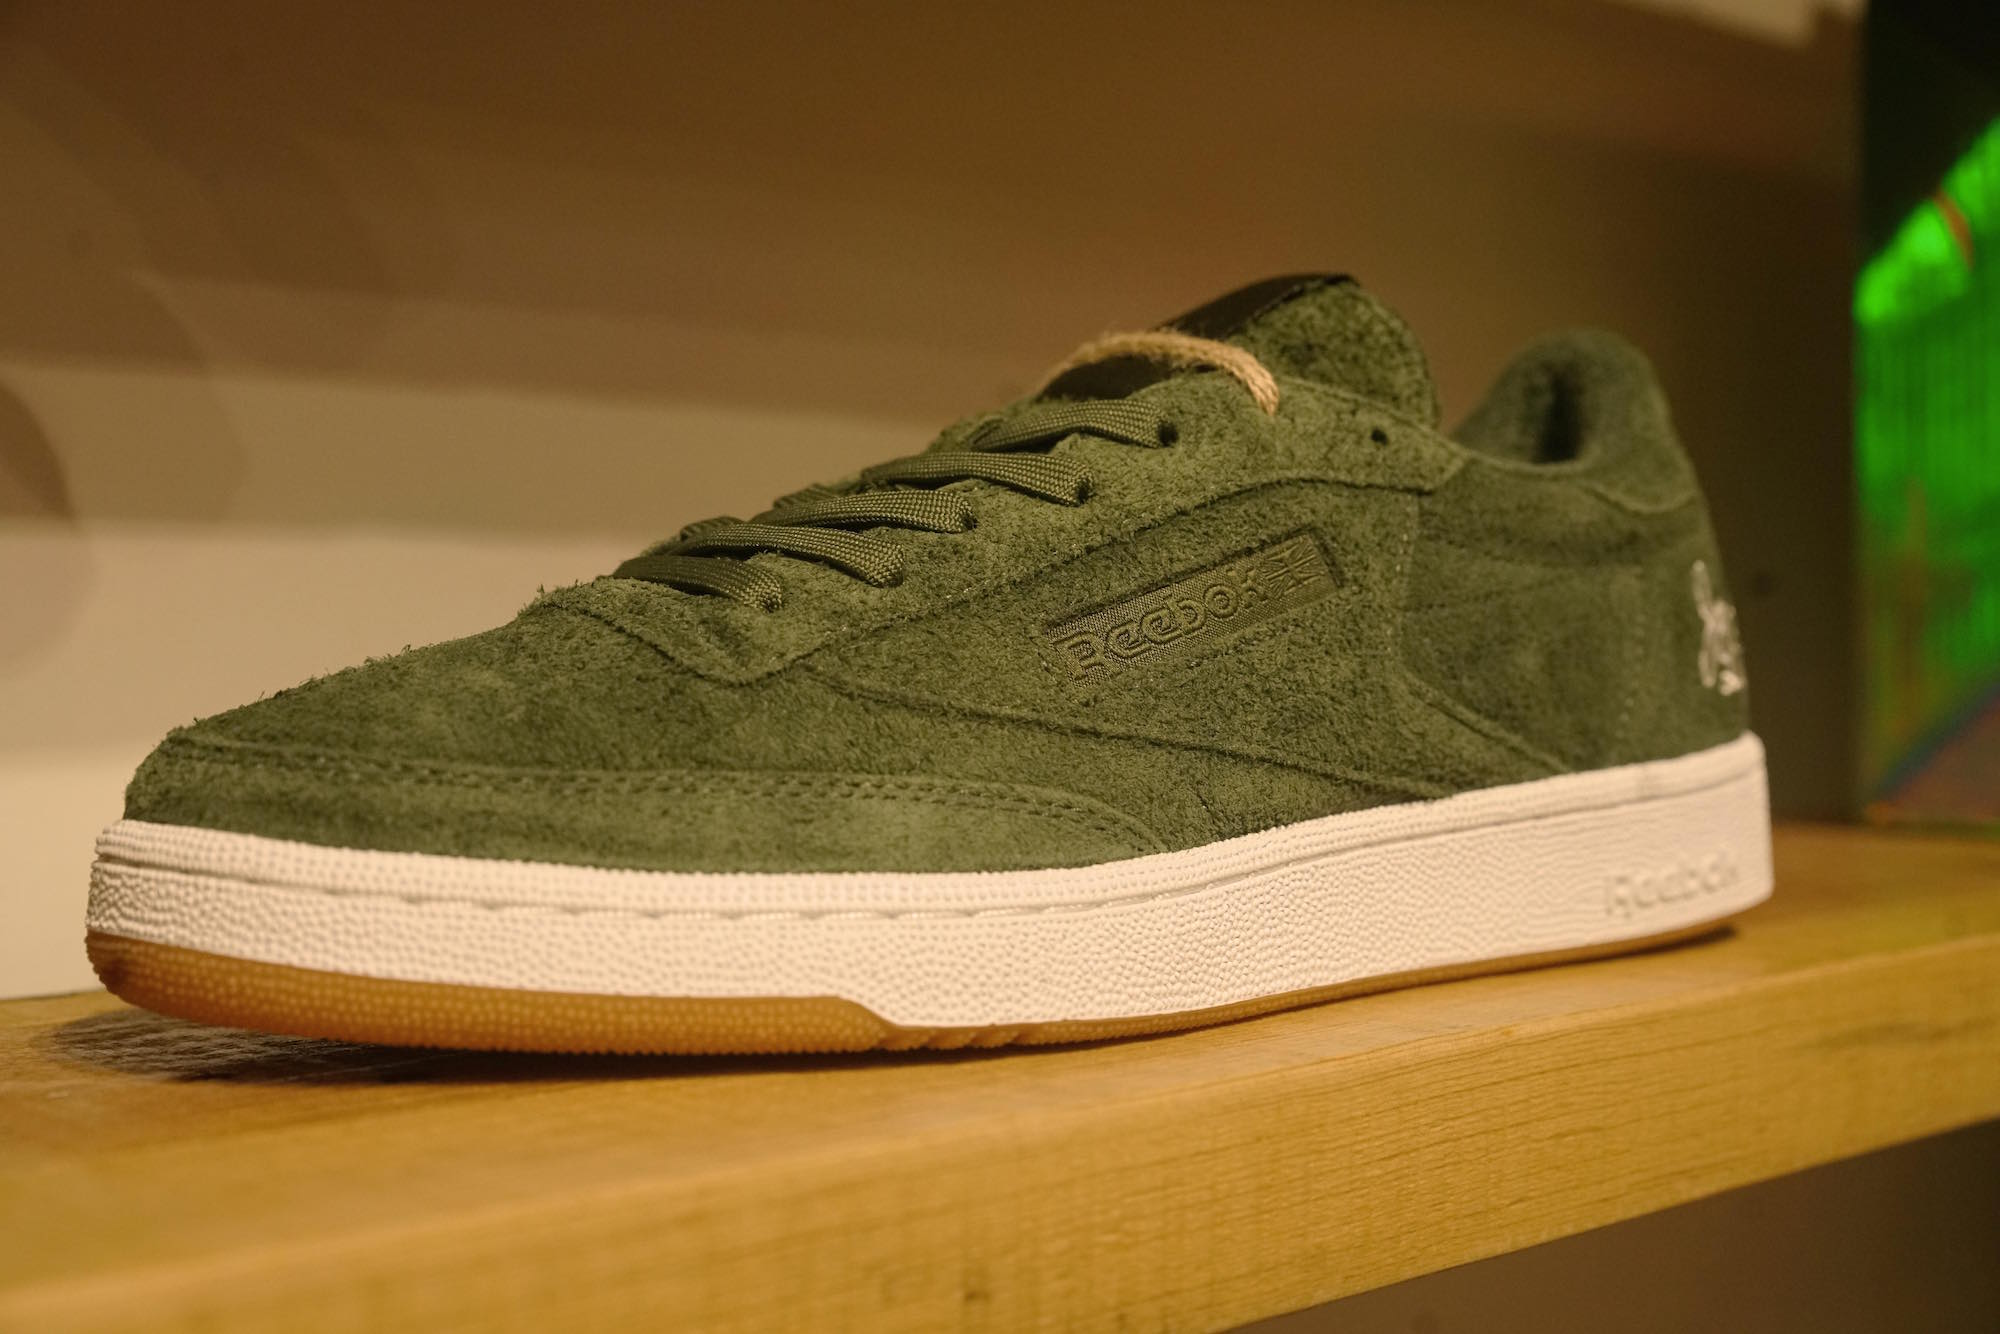 new arrival e2097 2b678 ... curreny reebok classic jet life club c 85 3 ...